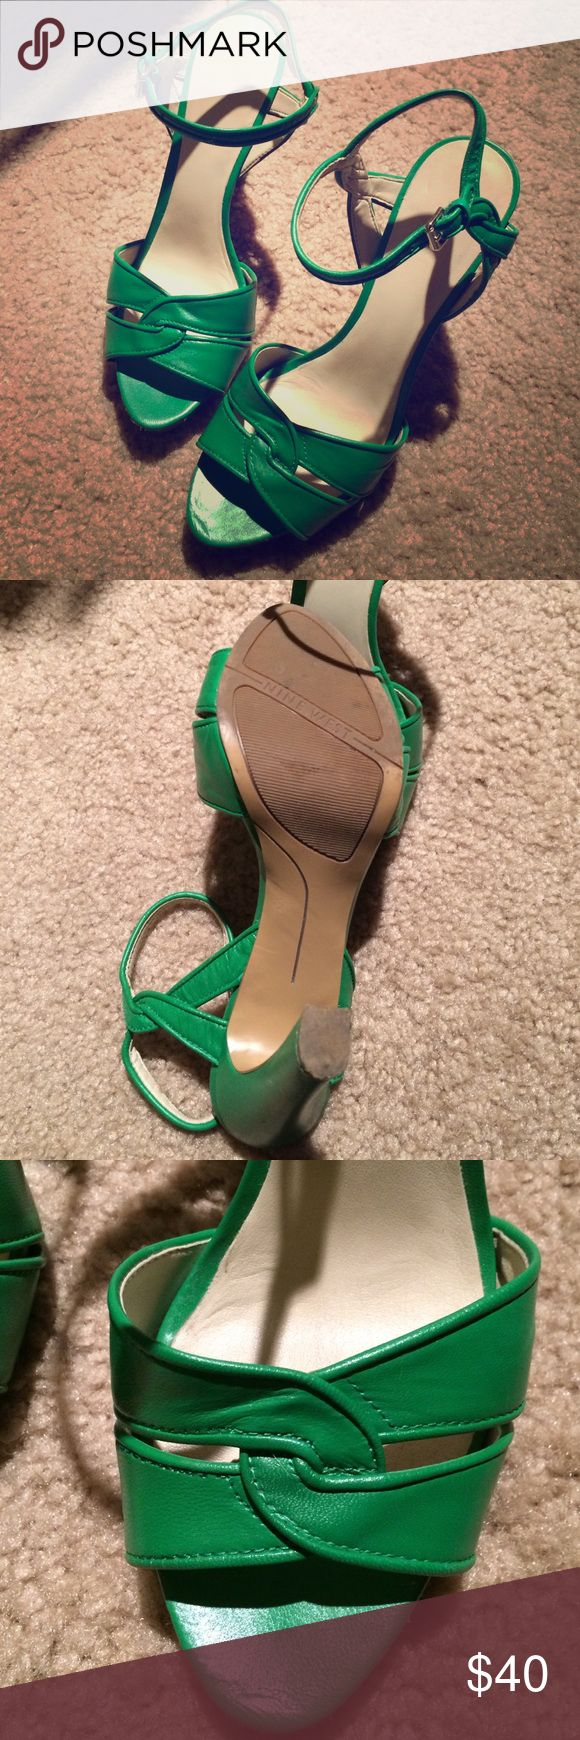 Green leather heels Beautiful rich green strappy heels from Nine West. Excellent condition Nine West Shoes Heels